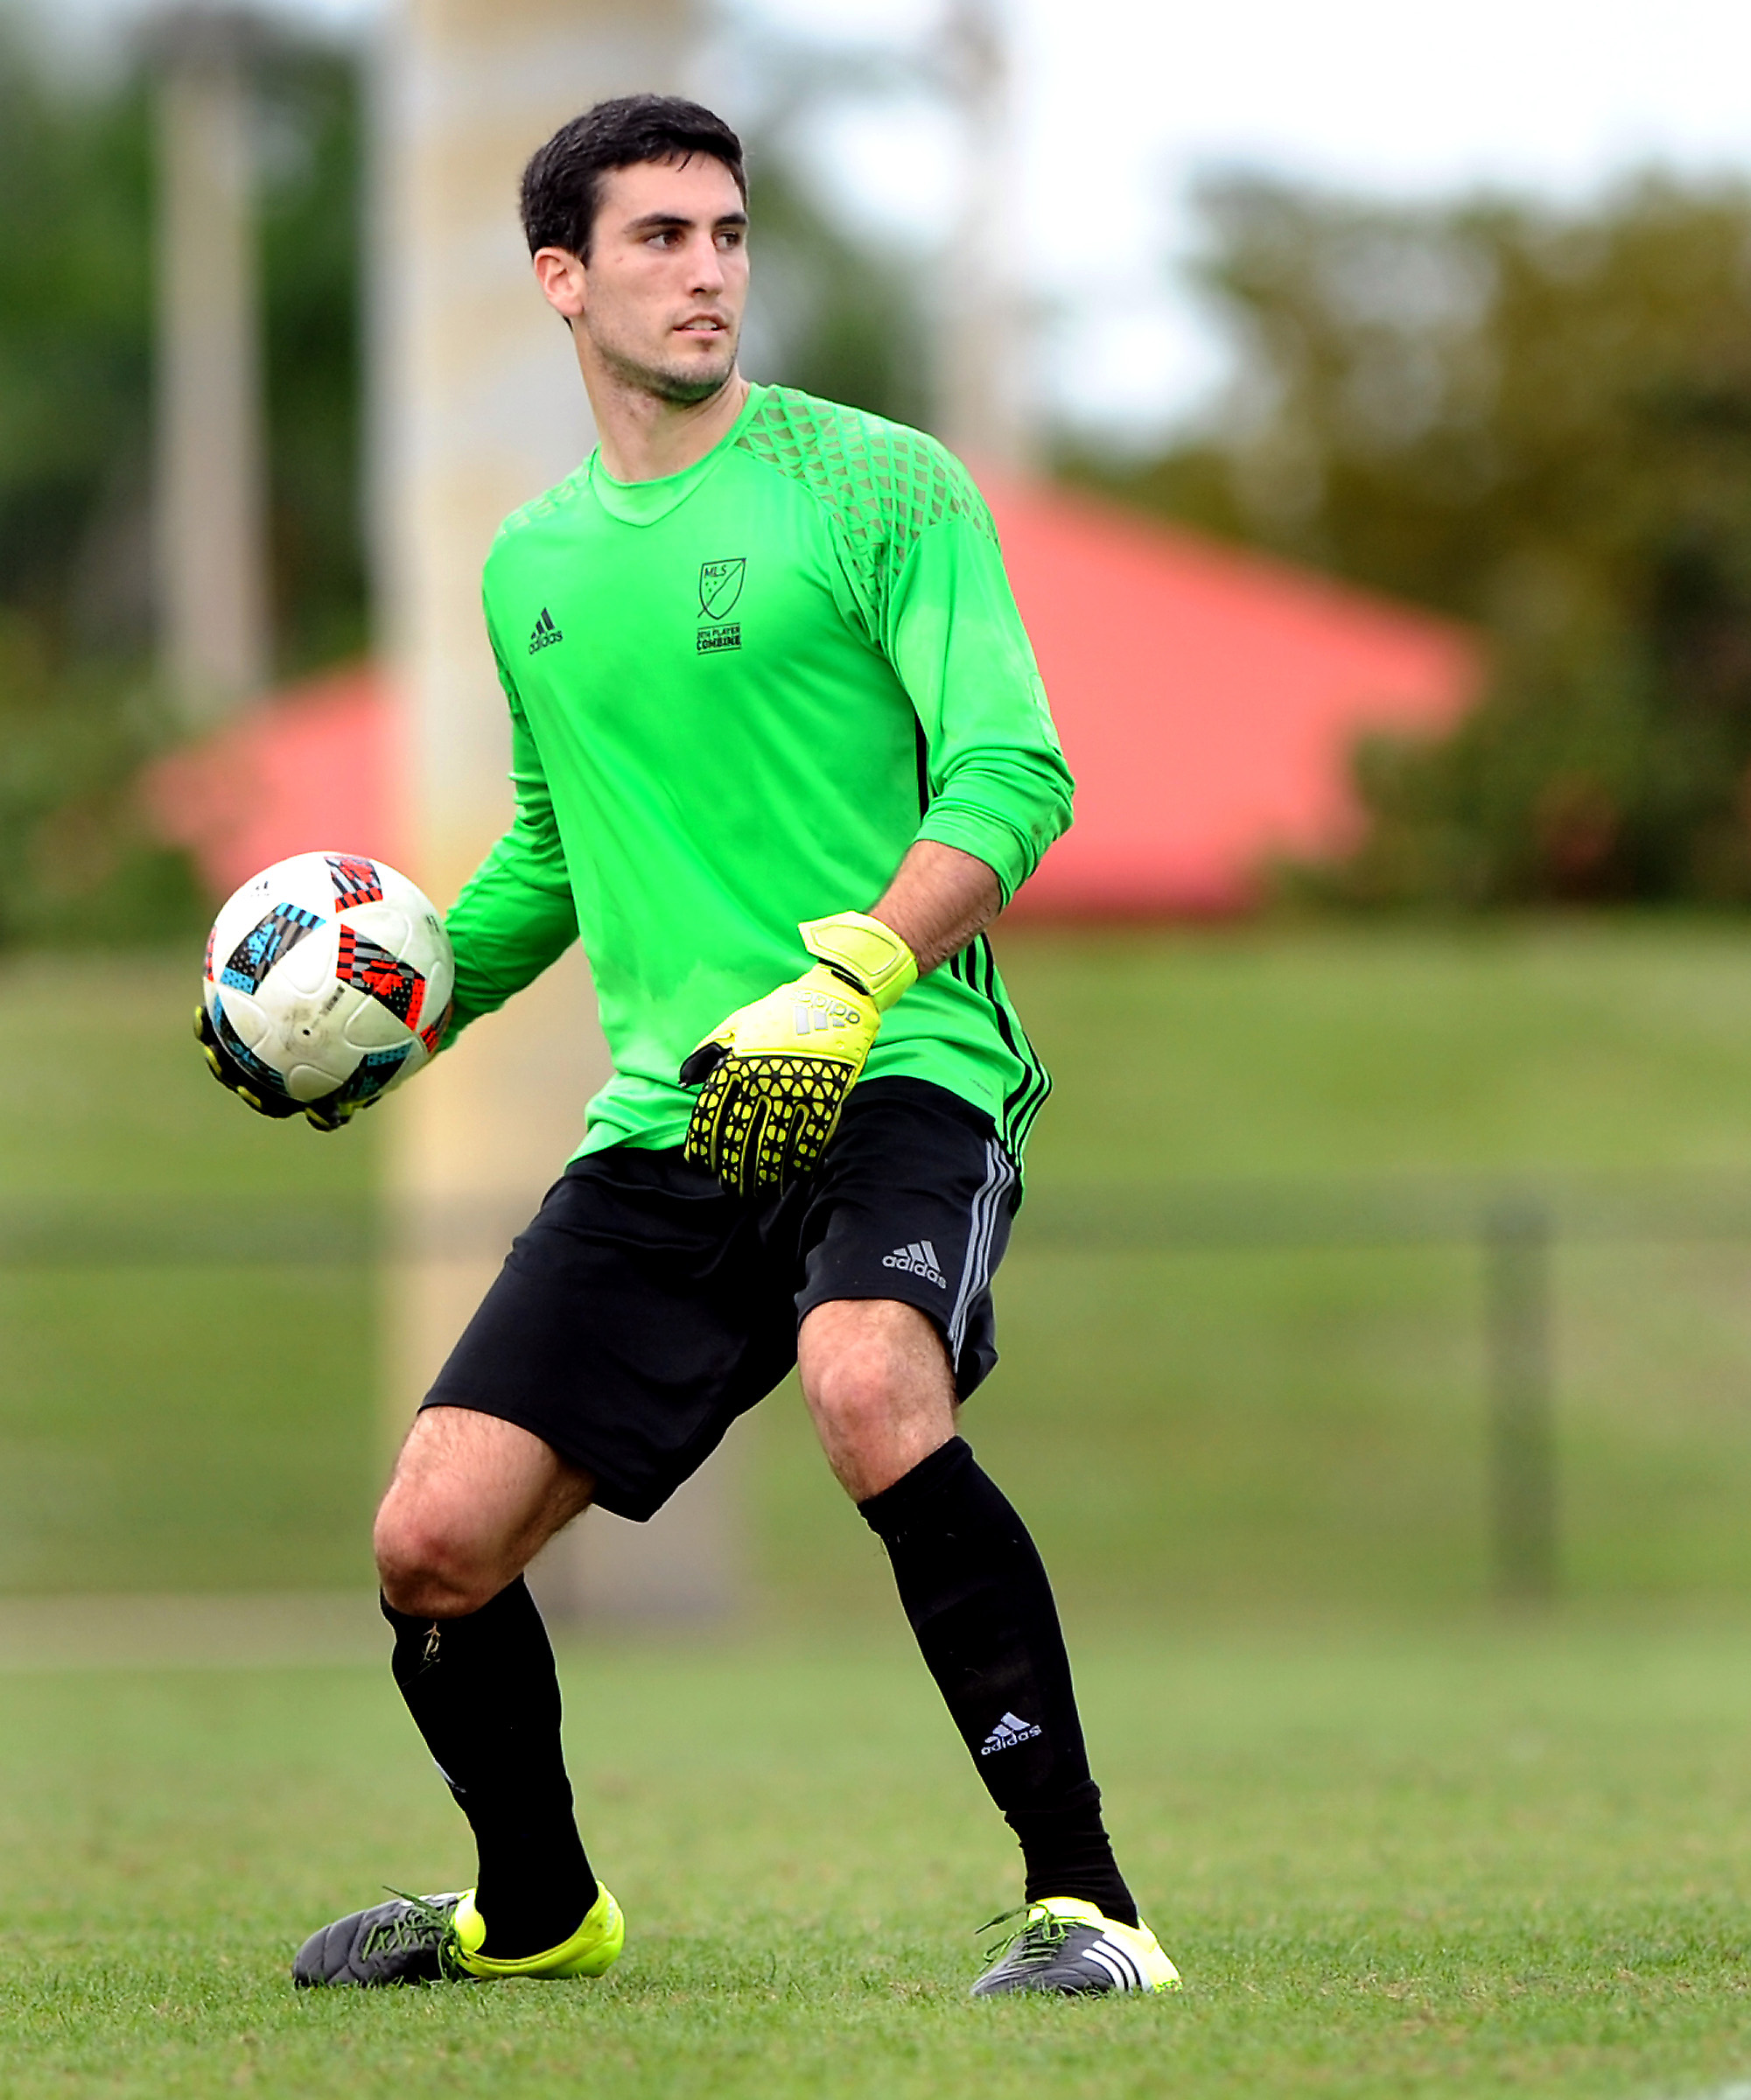 Andrew Tarbell is signed to a Generation Adidas contract.